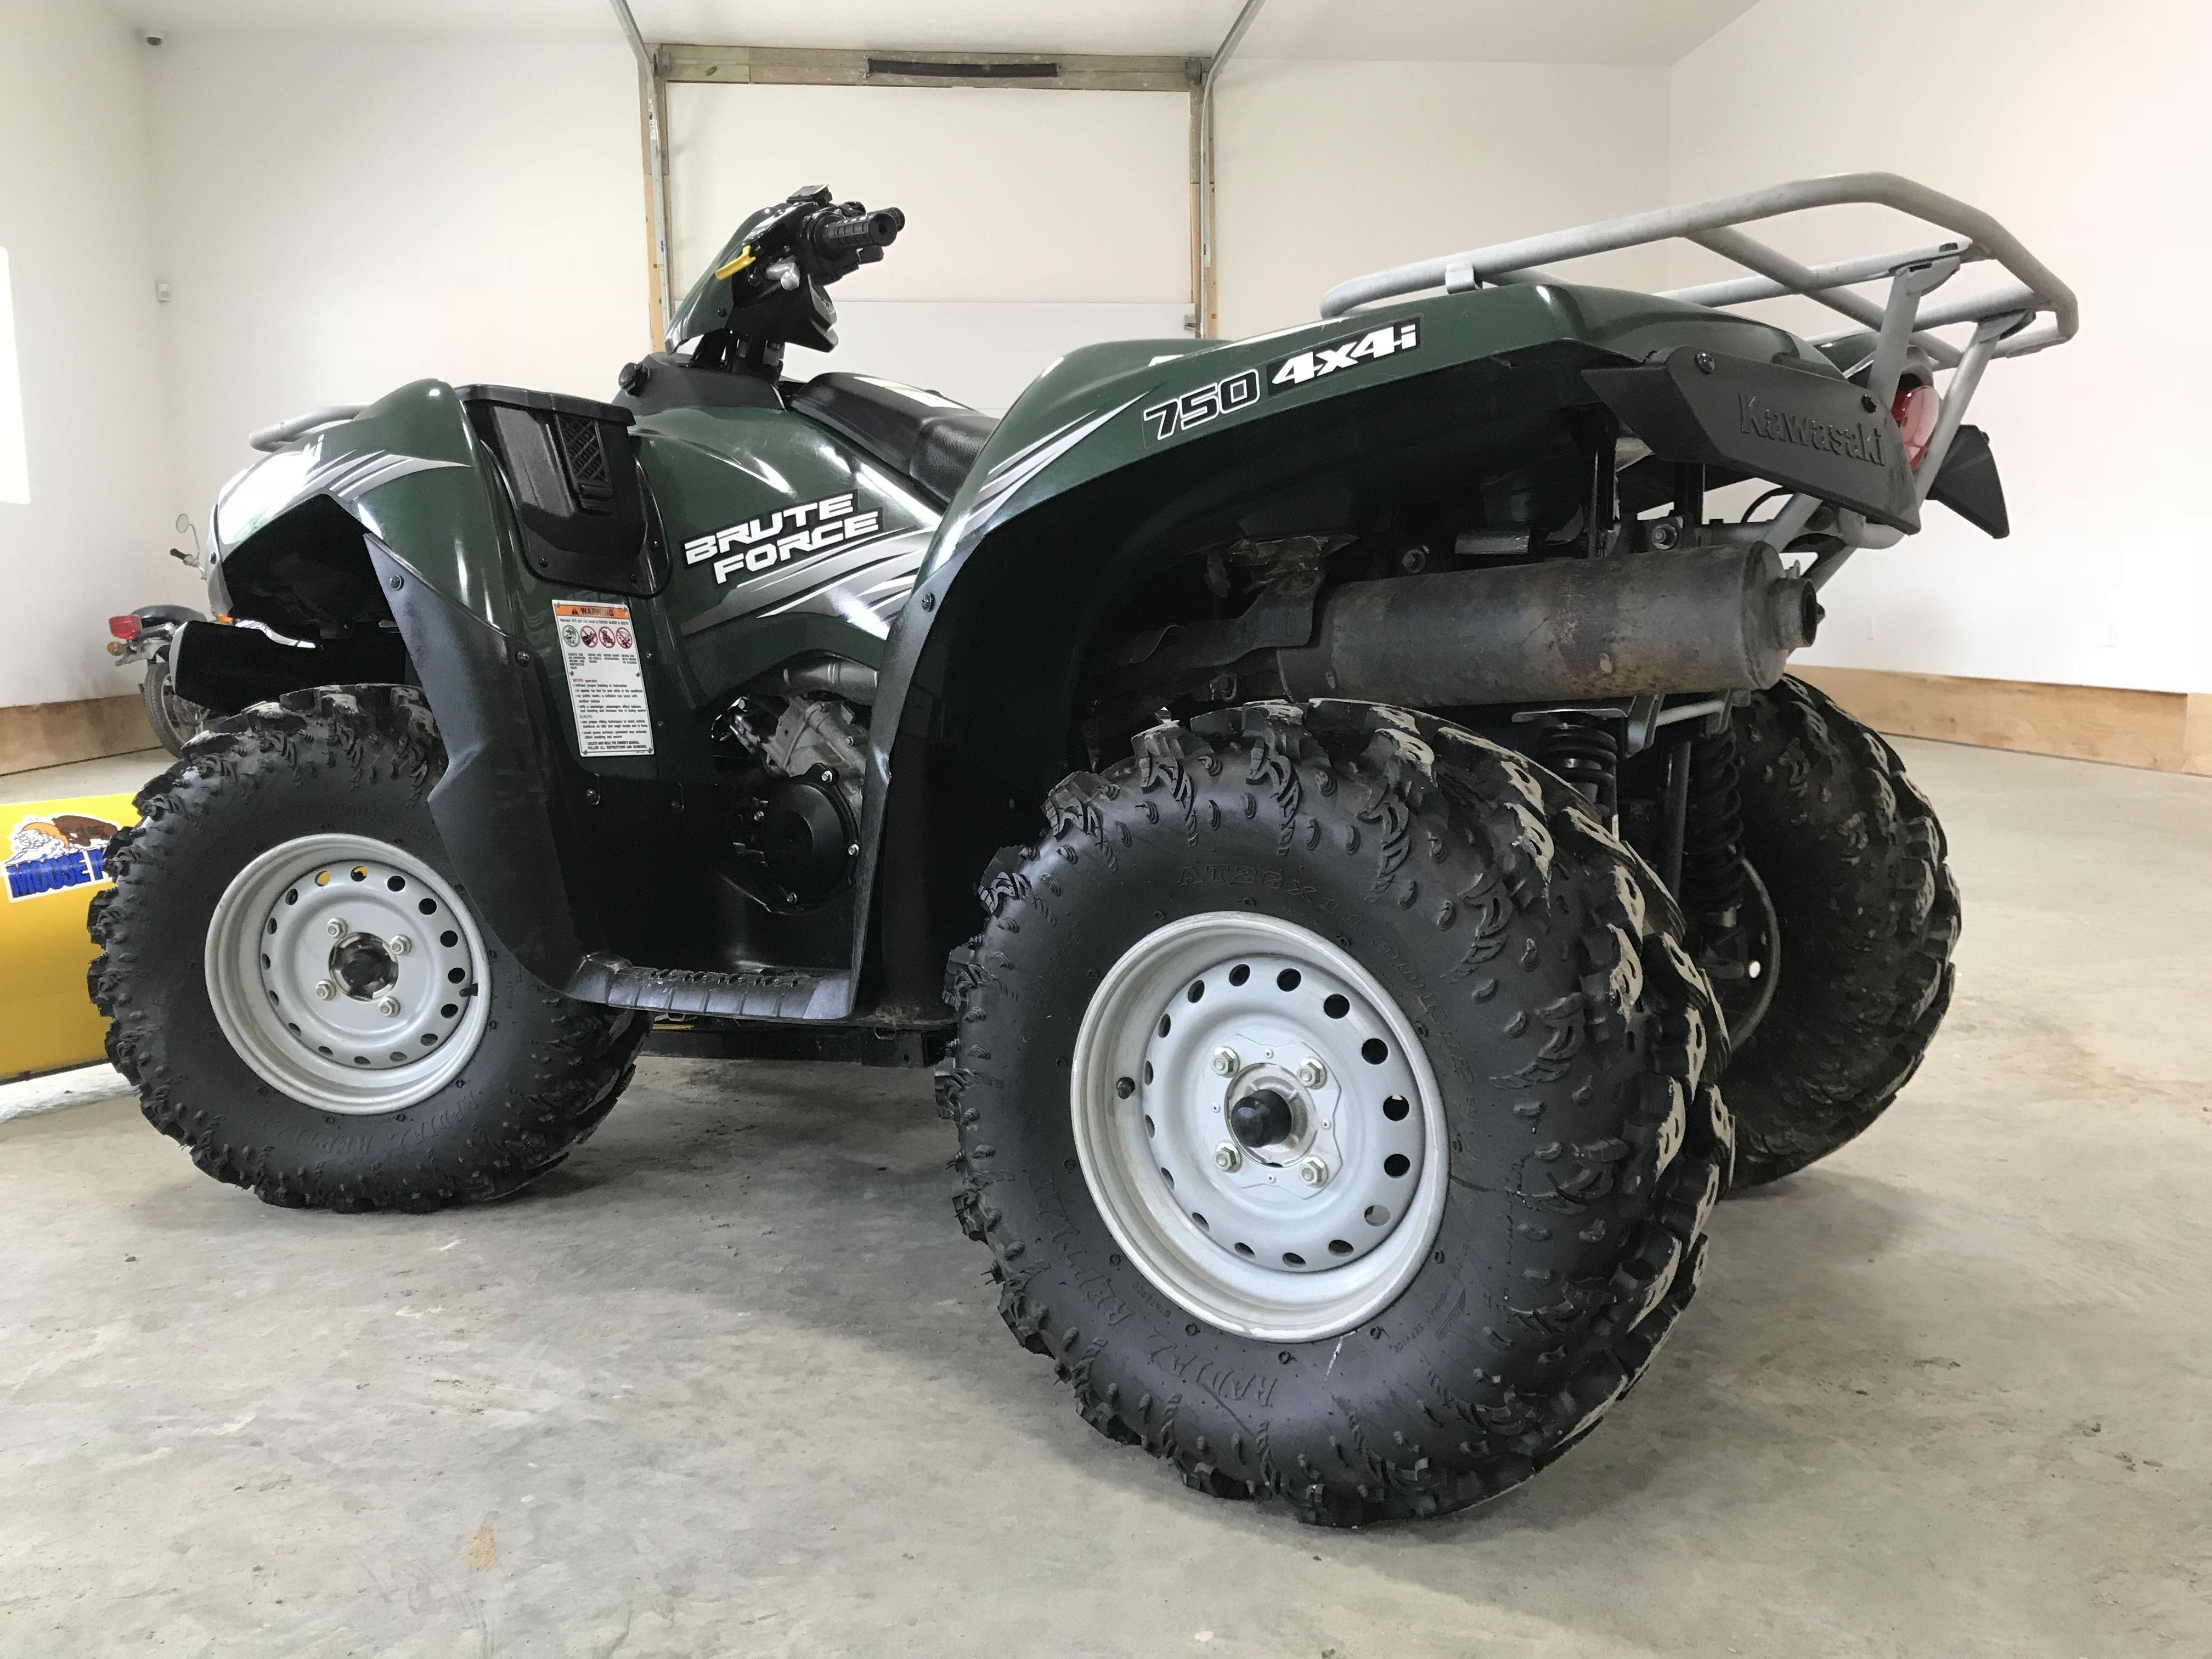 2011 Kawasaki Brute Force 750 4x4 - Nearly New Condition